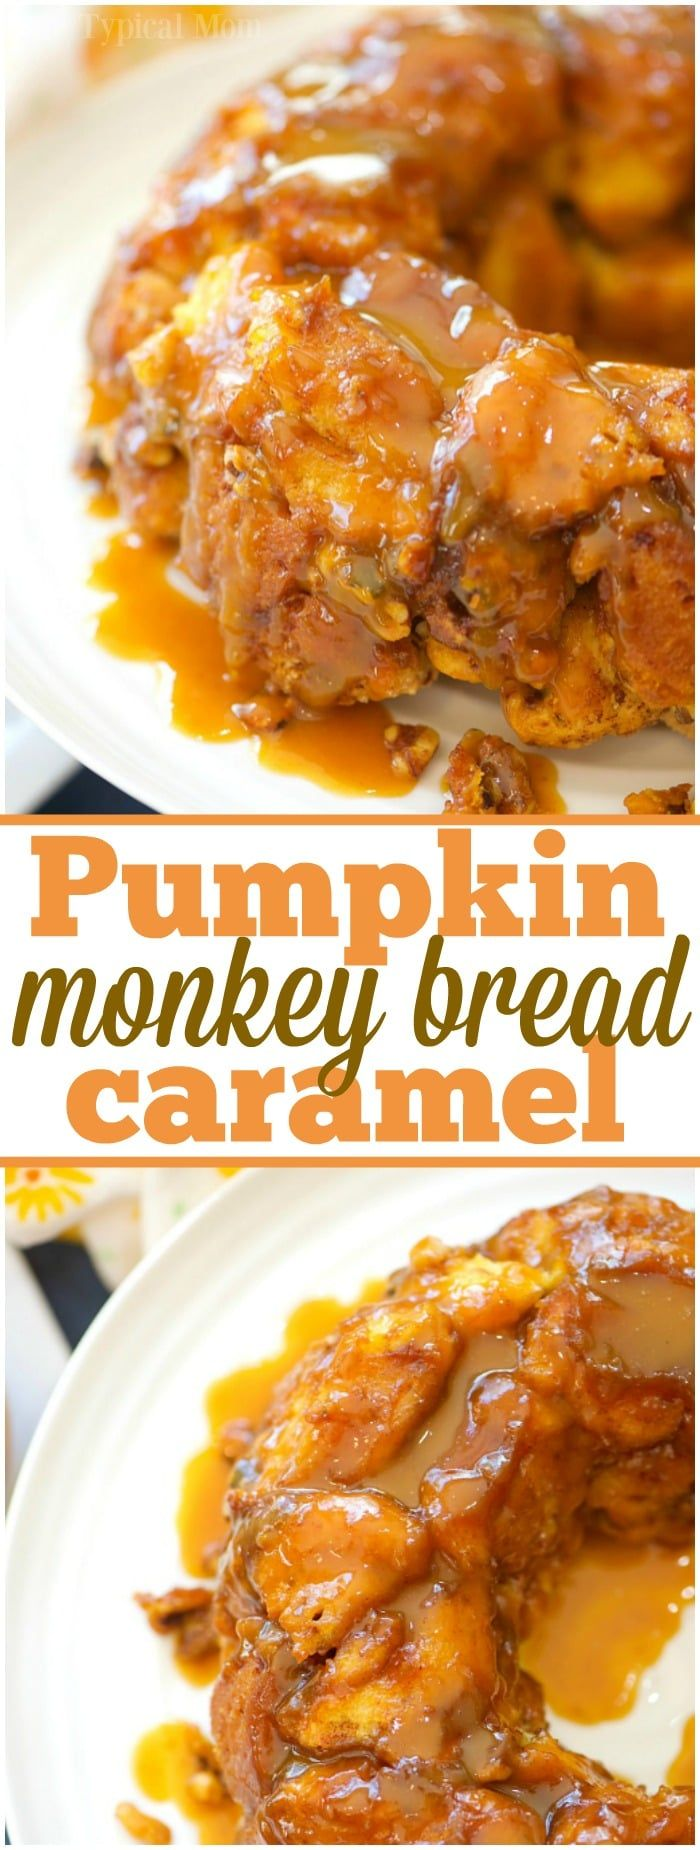 This is the most amazing caramel pumpkin monkey bread you will ever make and it is really easy too!! The best Fall breakfast or dessert I've ever made! via @thetypicalmom